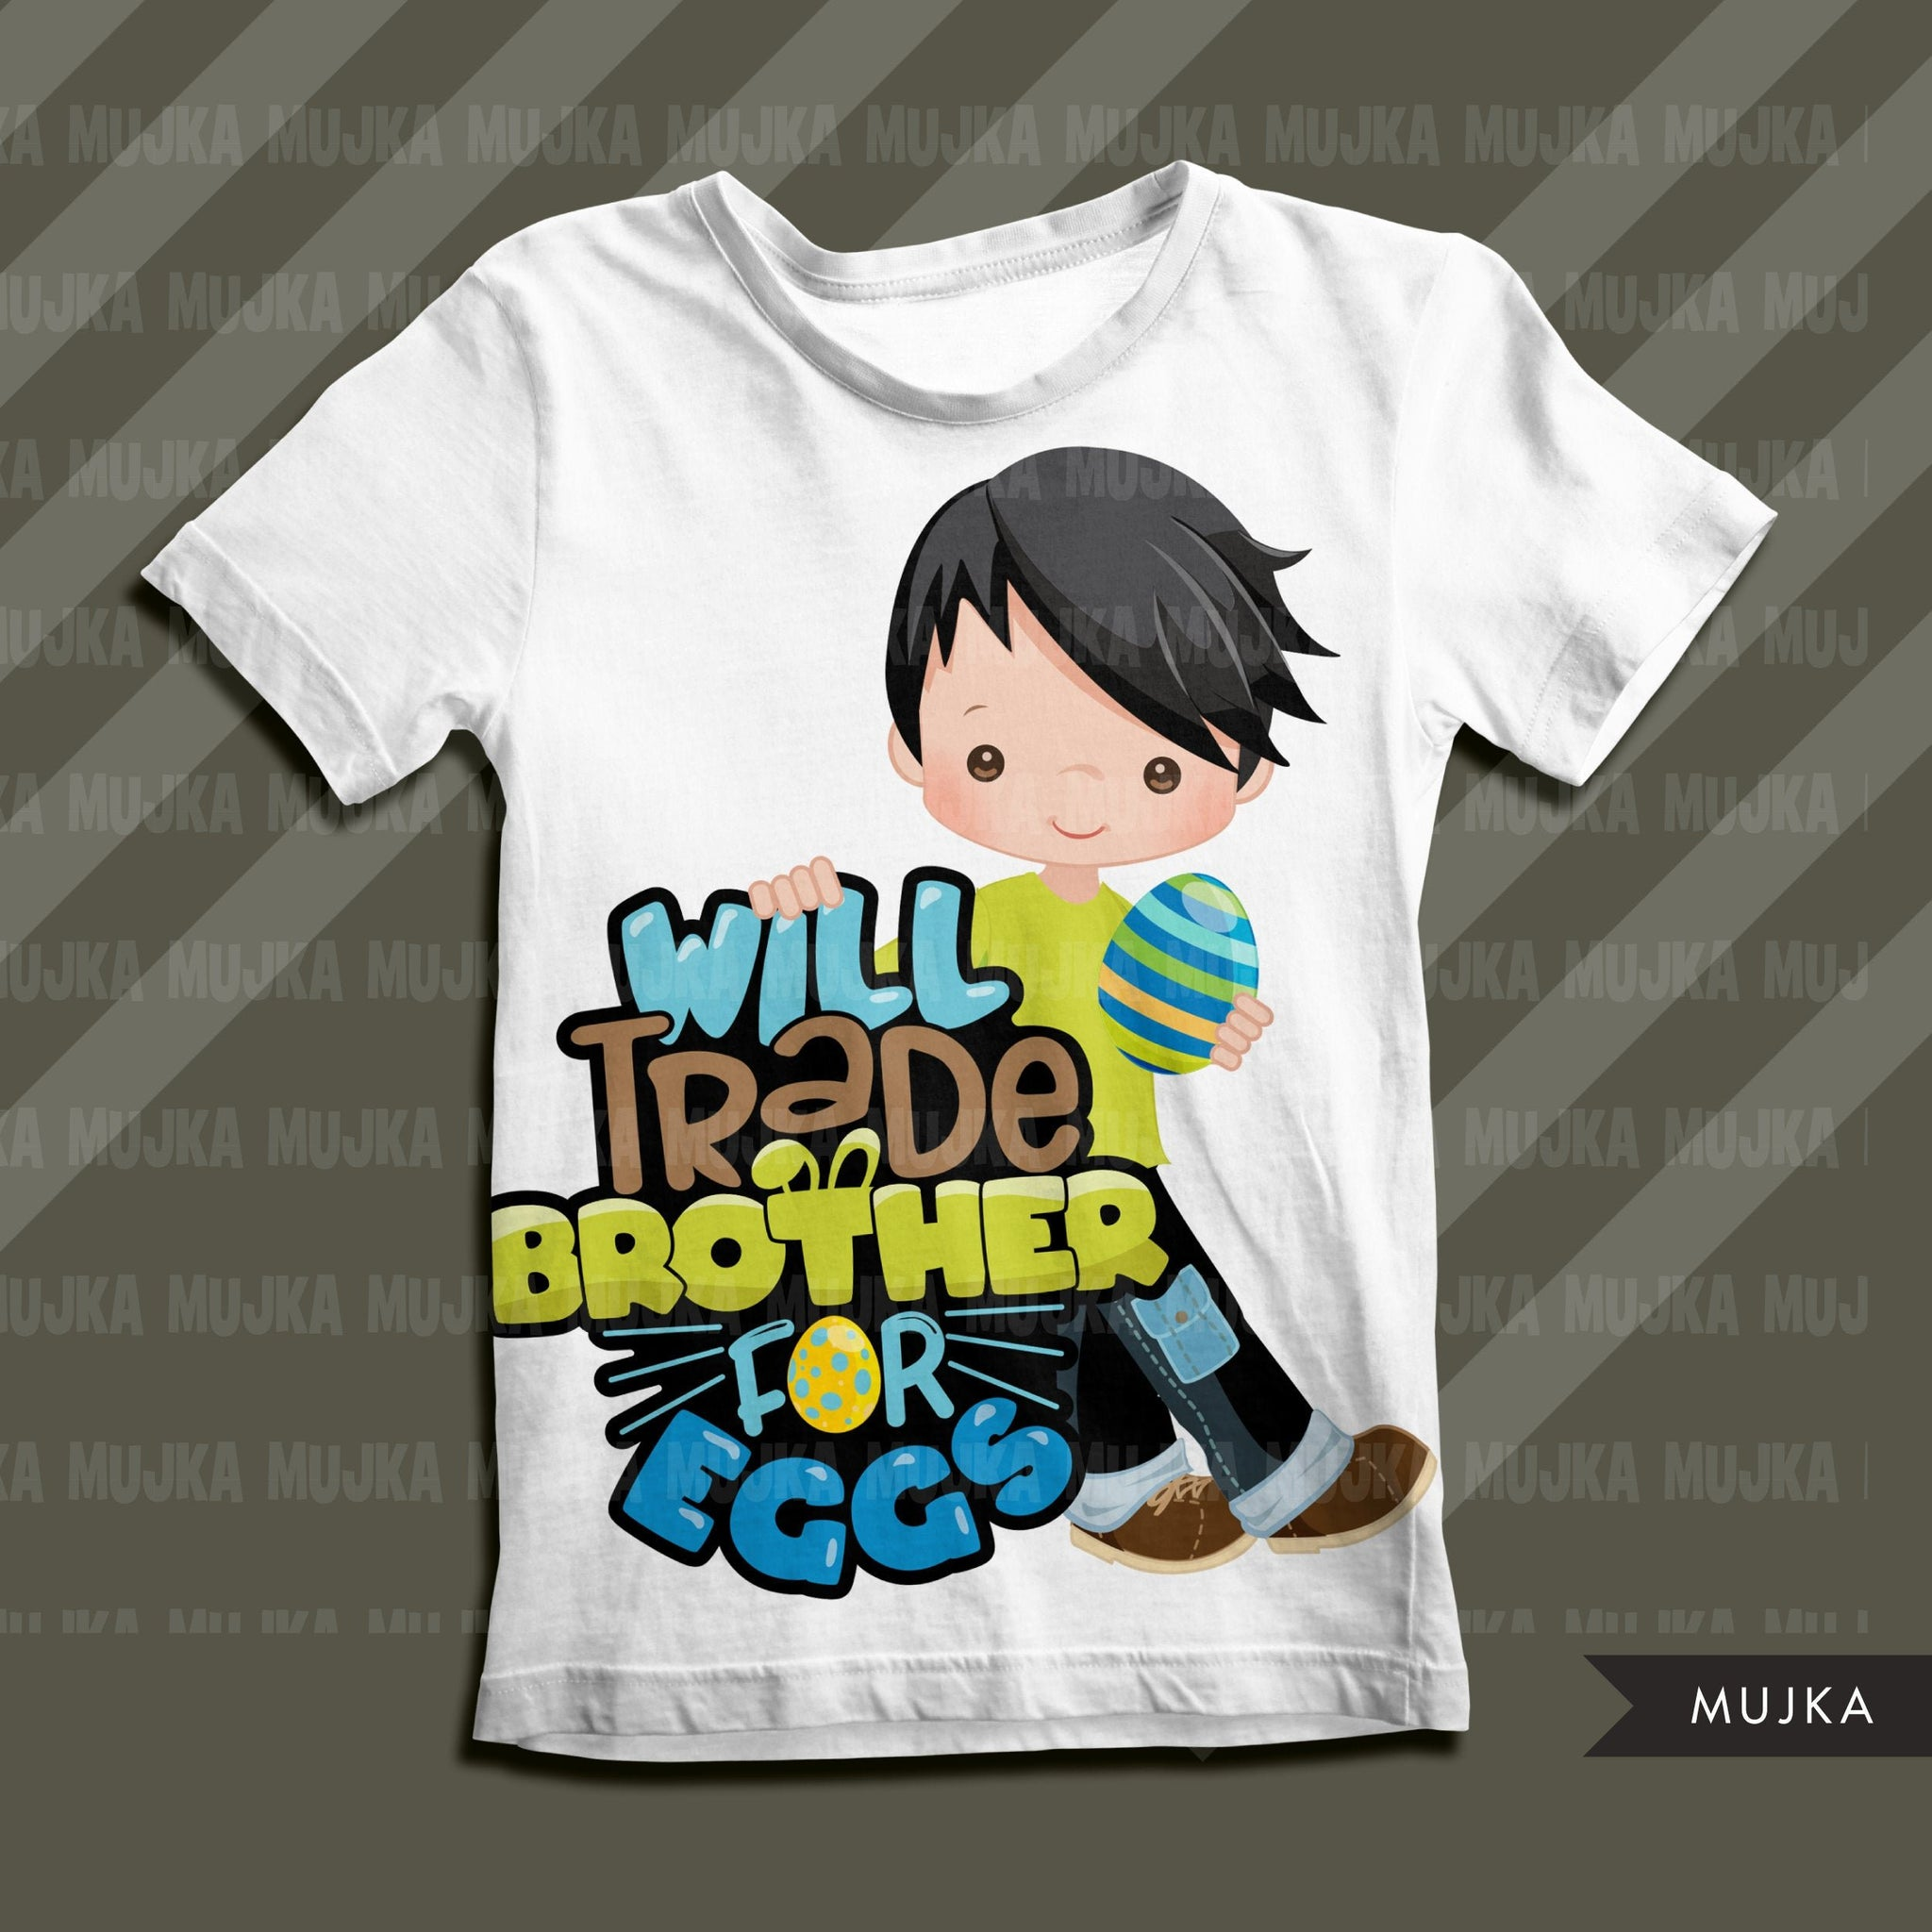 Easter PNG digital, Will trade brother for eggs Printable HTV sublimation image transfer clipart, t-shirt boy graphics